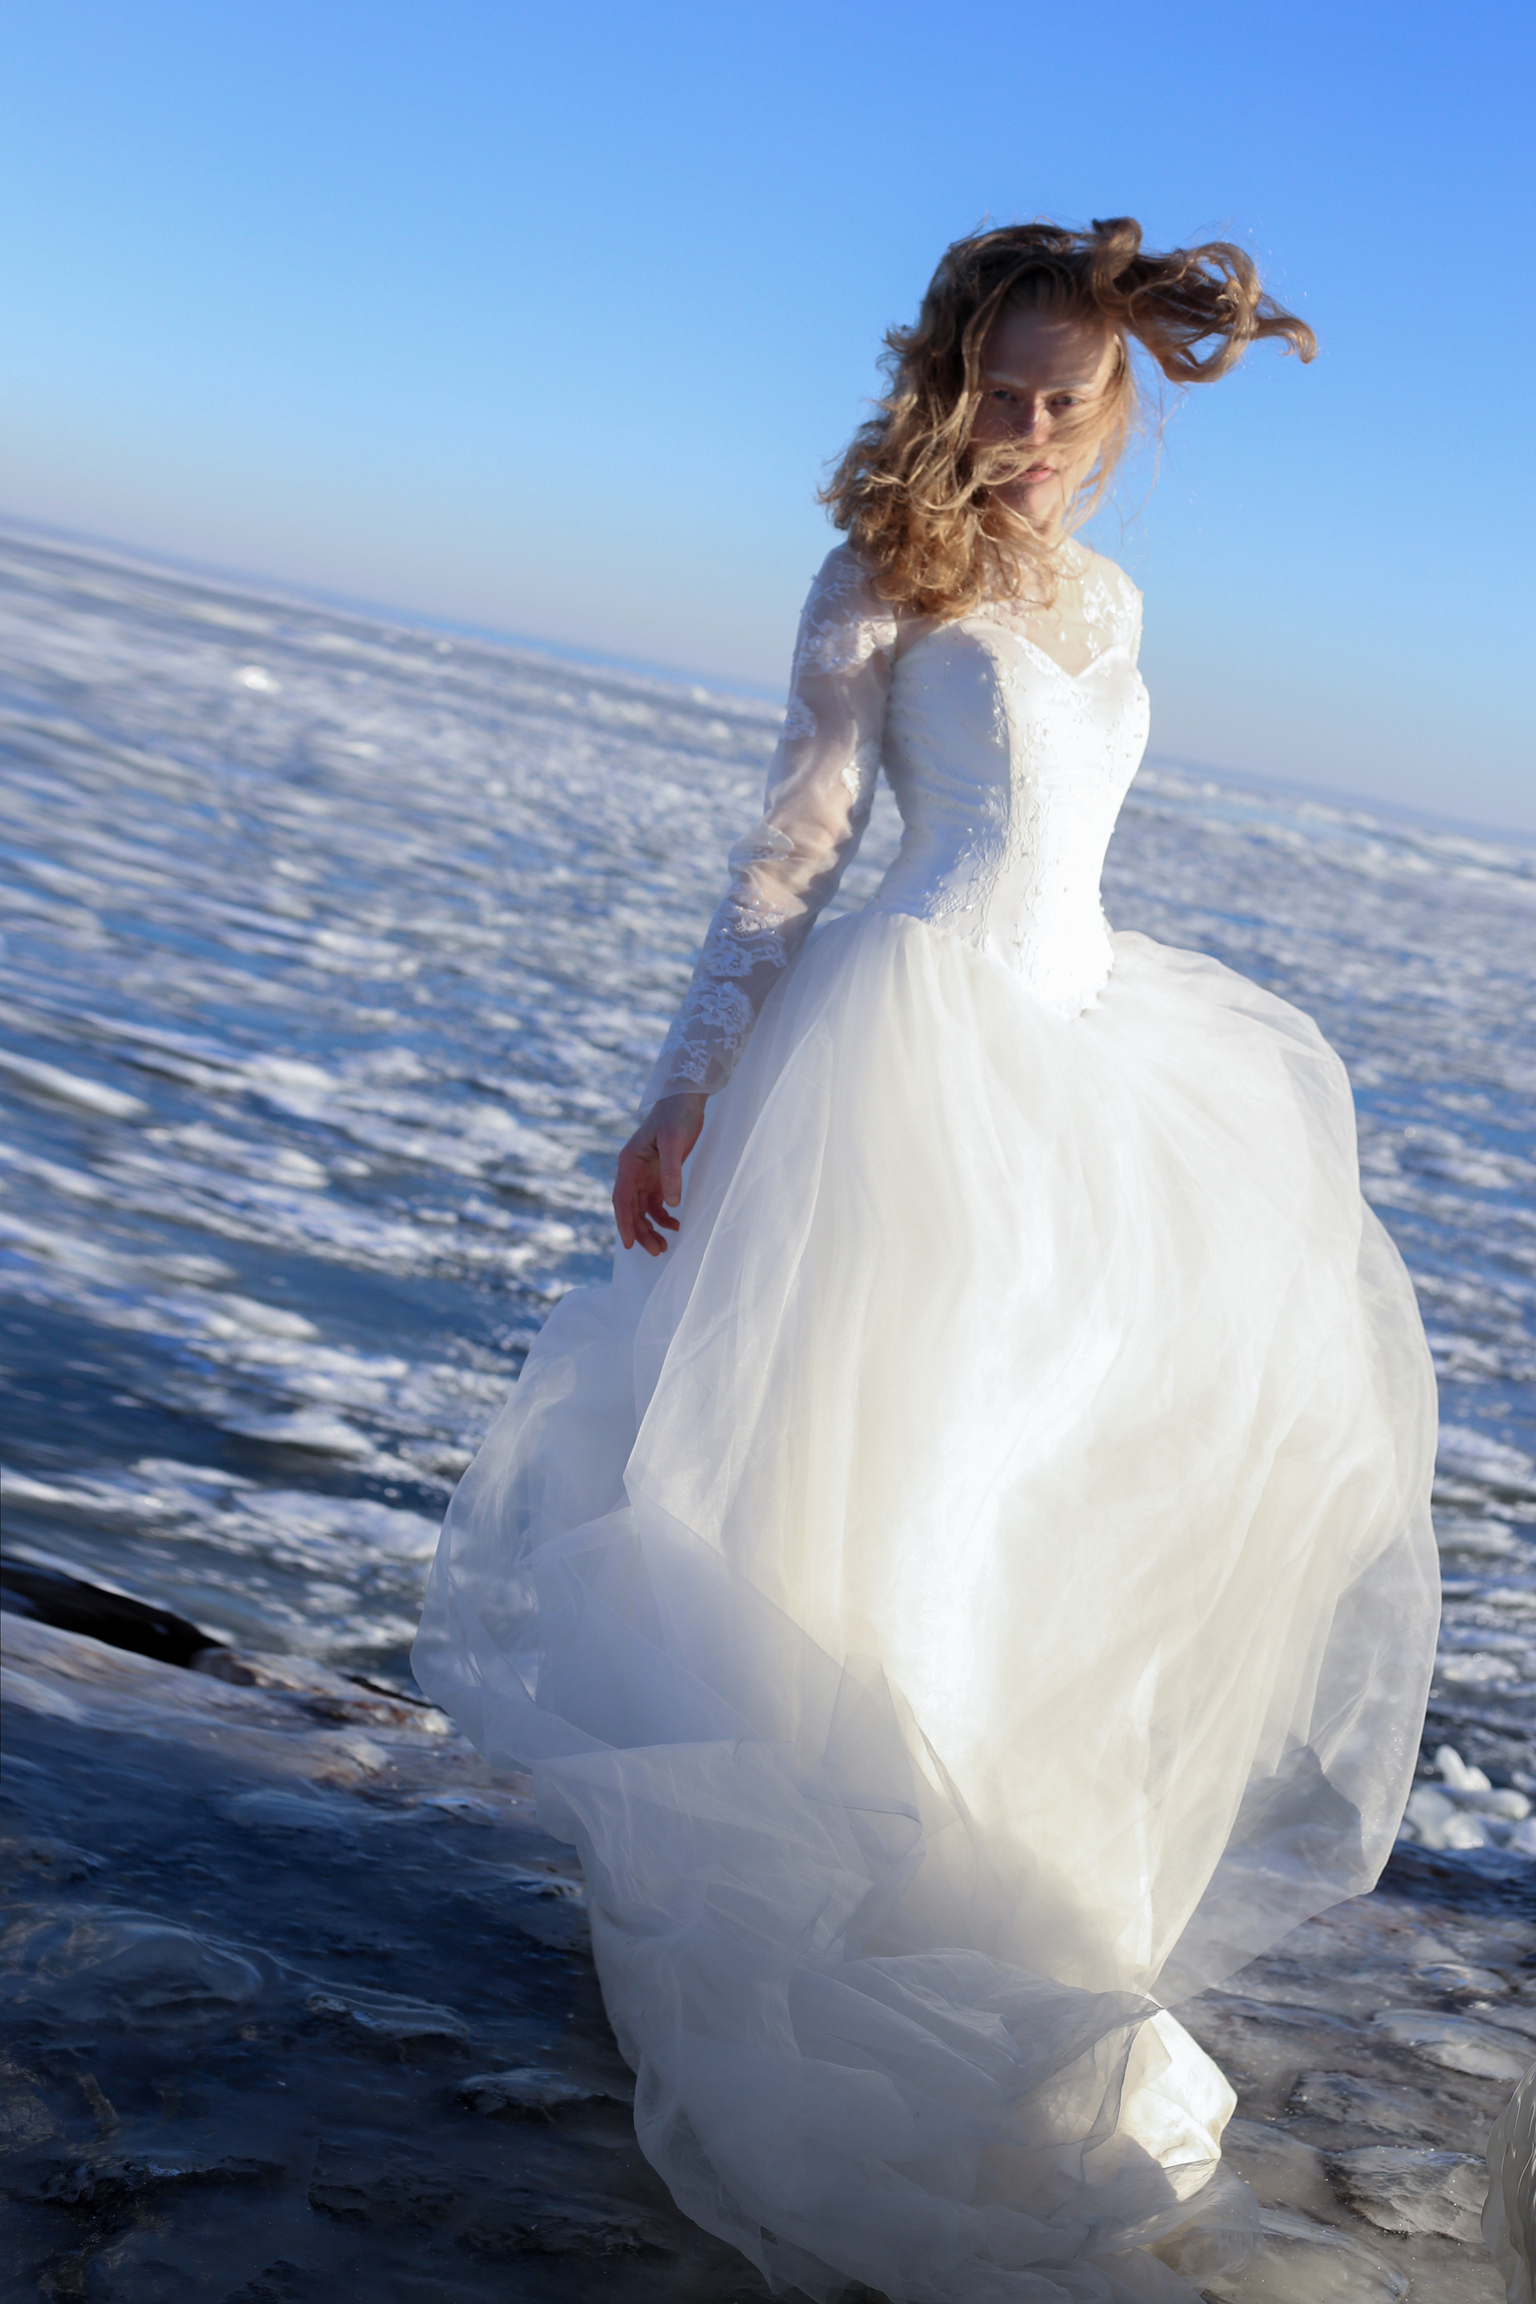 frozen bride - ice cold in this time for everyone , how we can finnd the love in pandemic in this time we are searching for love but not ice cold. amazing shoot 14  - foto door marli op 10-04-2021 - deze foto bevat: water, trouwjurk, lucht, kapsel, bruid, jurk, mensen in de natuur, azuur, flitsfotografie, bruidskleding